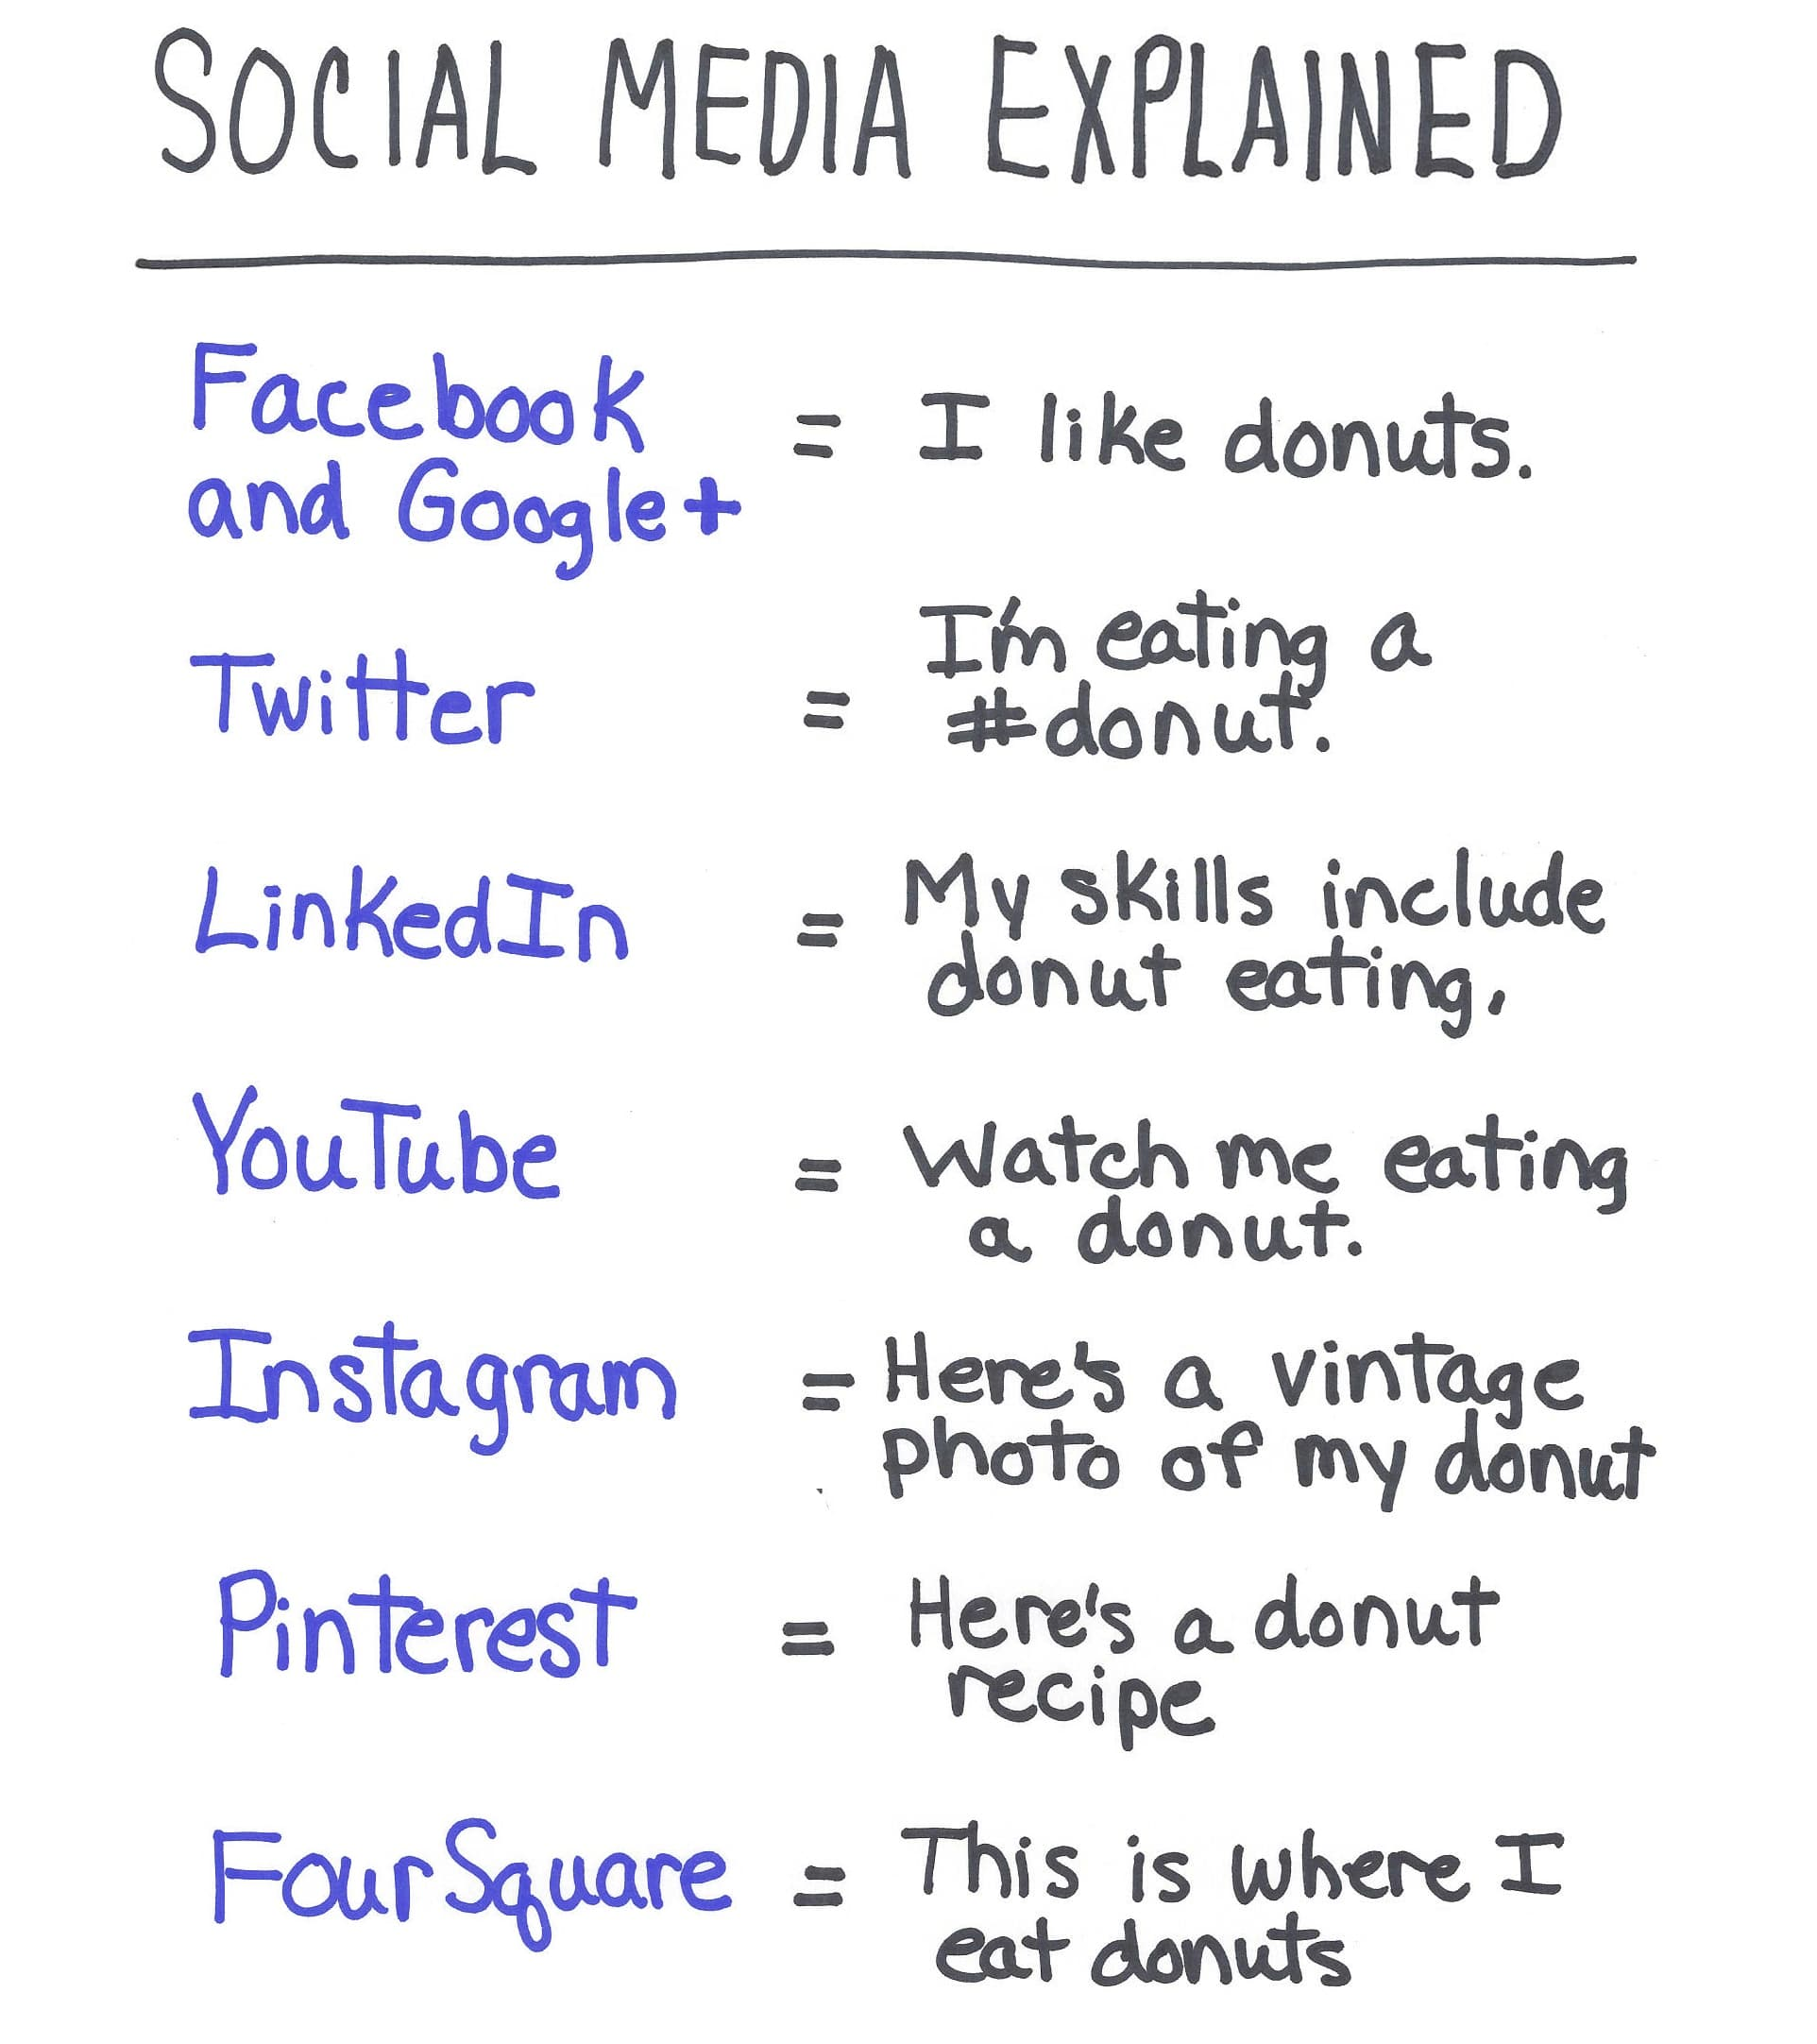 What is the difference between the social media platforms